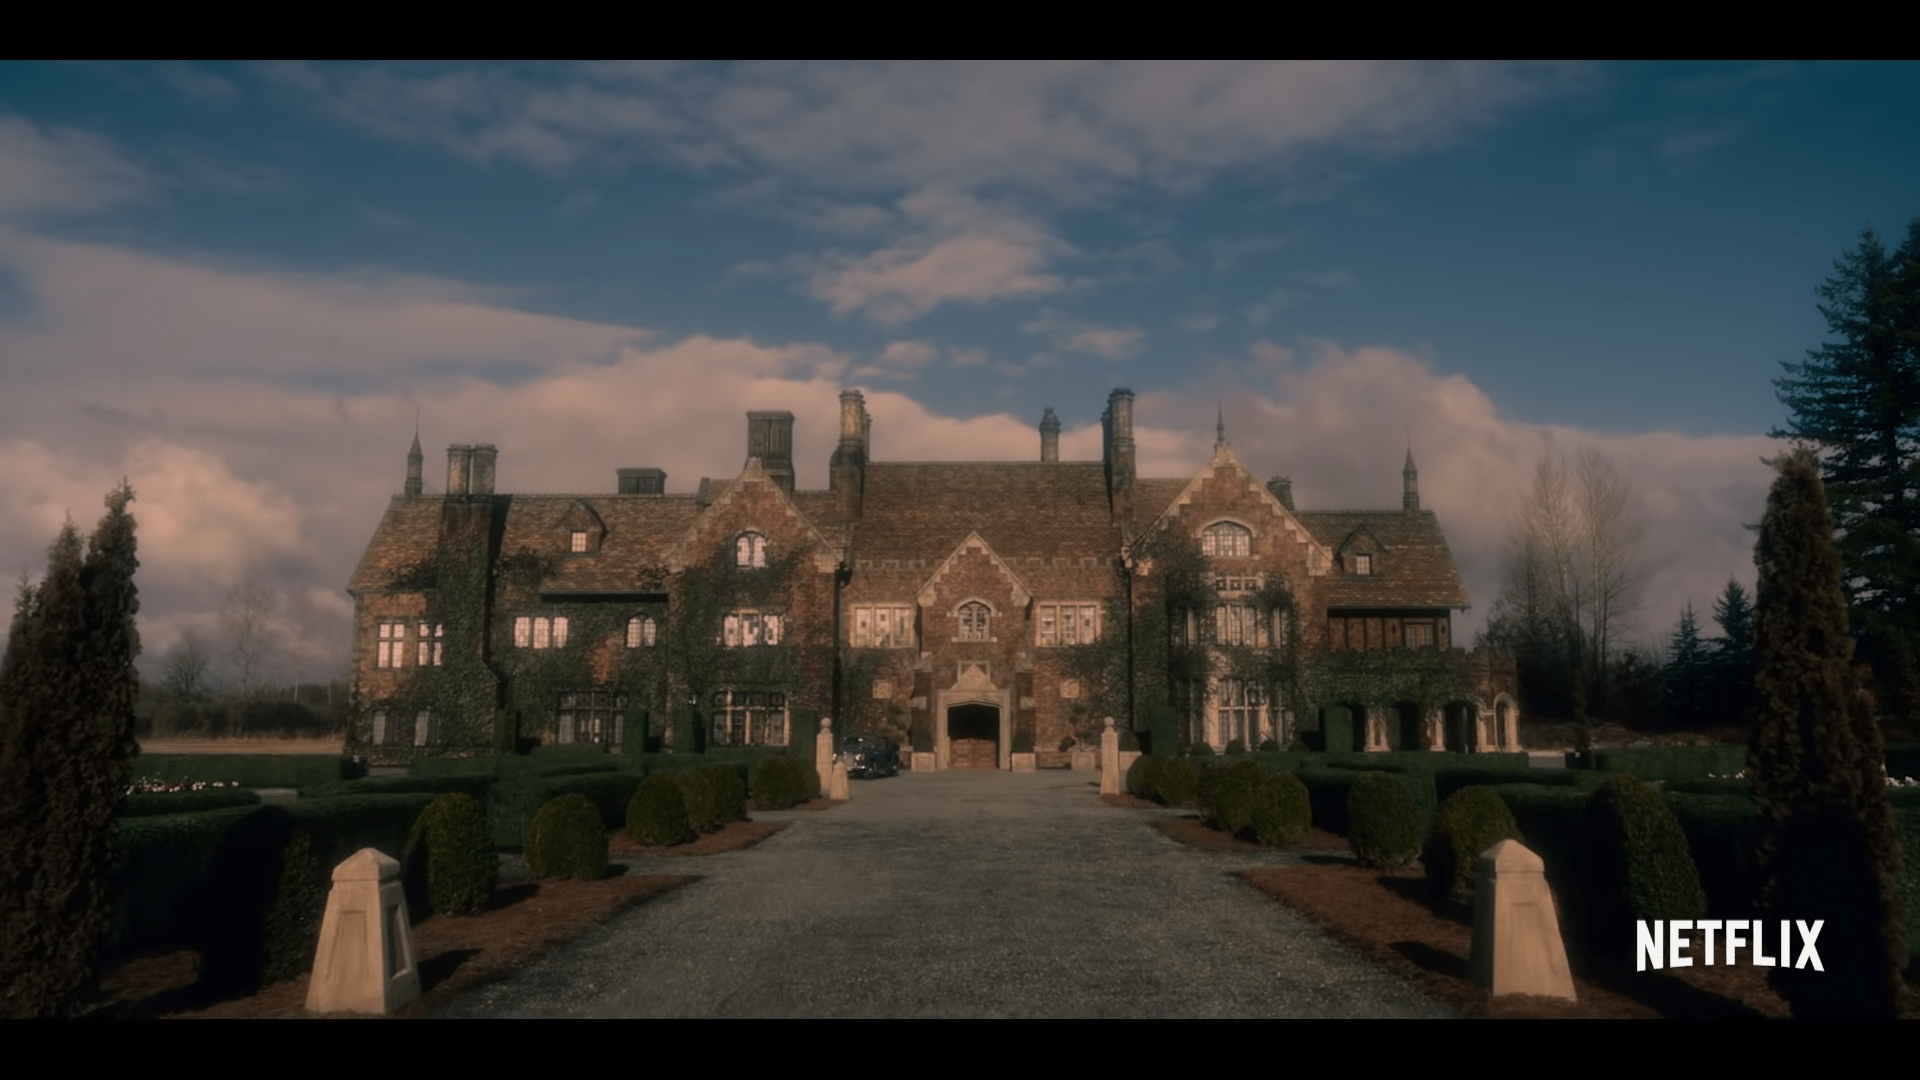 Netflix Releases Creepy Af The Haunting Of Bly Manor Teaser Clip Along With October Release Date Nestia